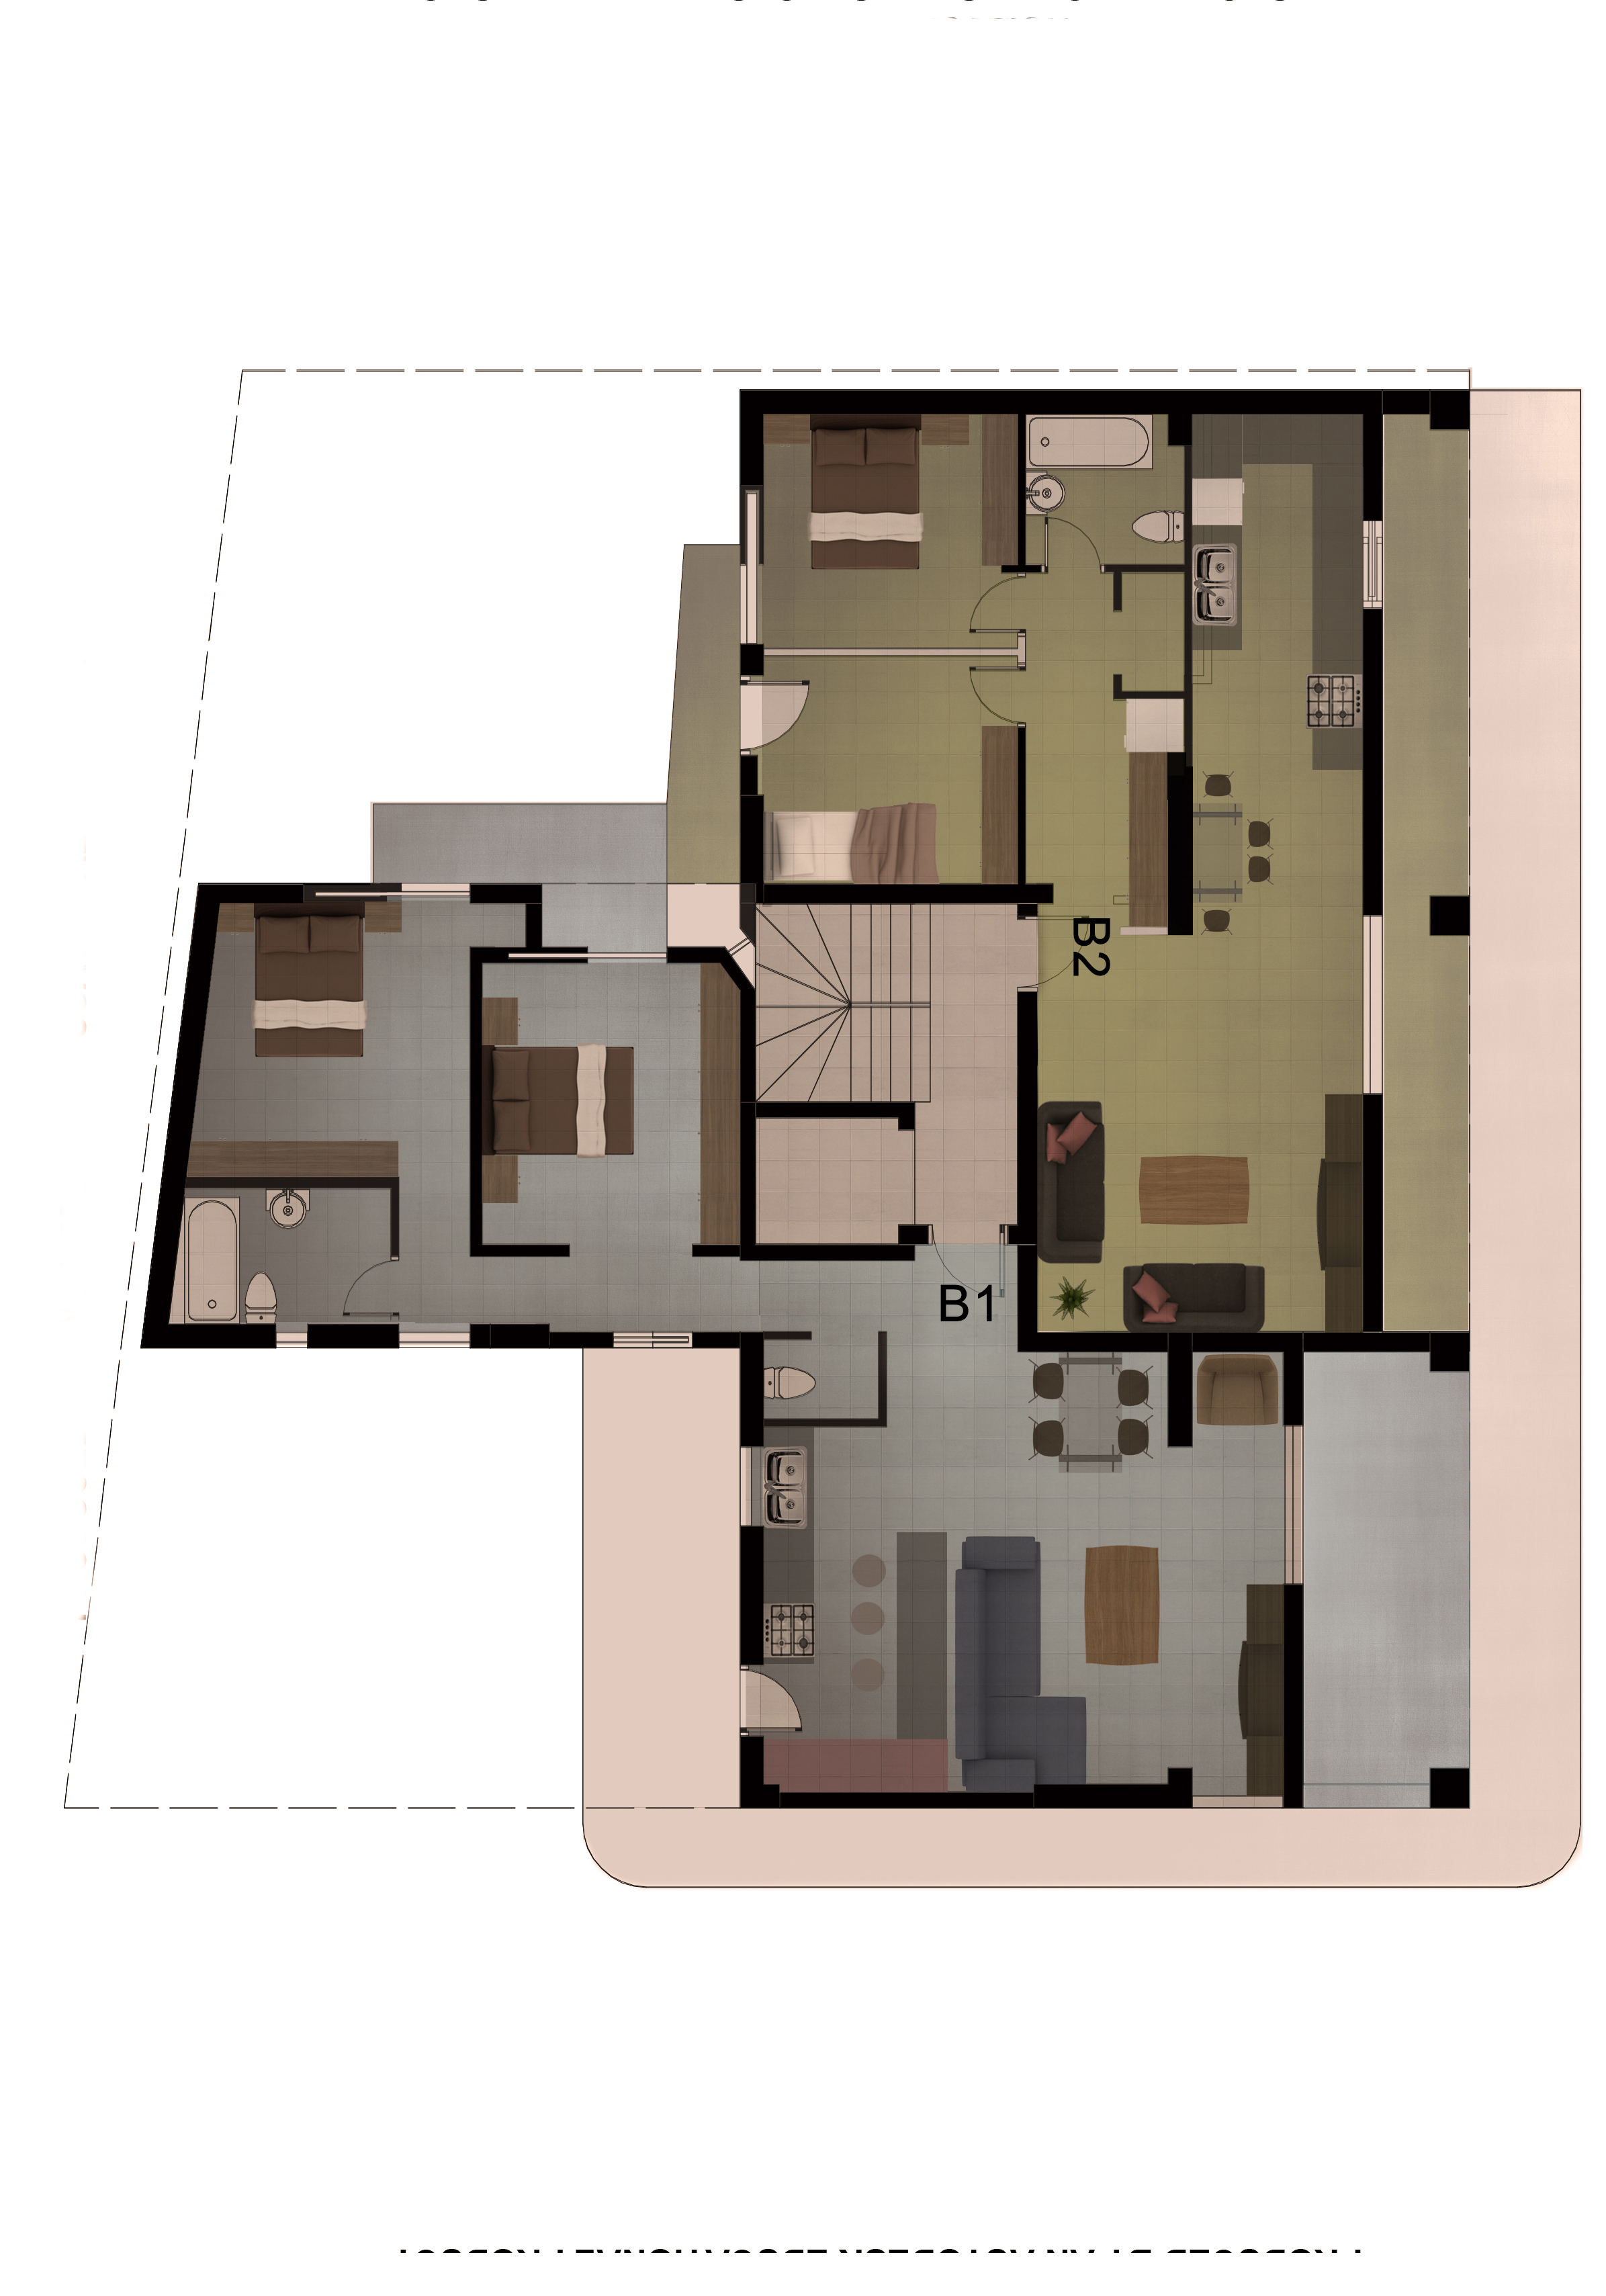 Plan 2nd Floor